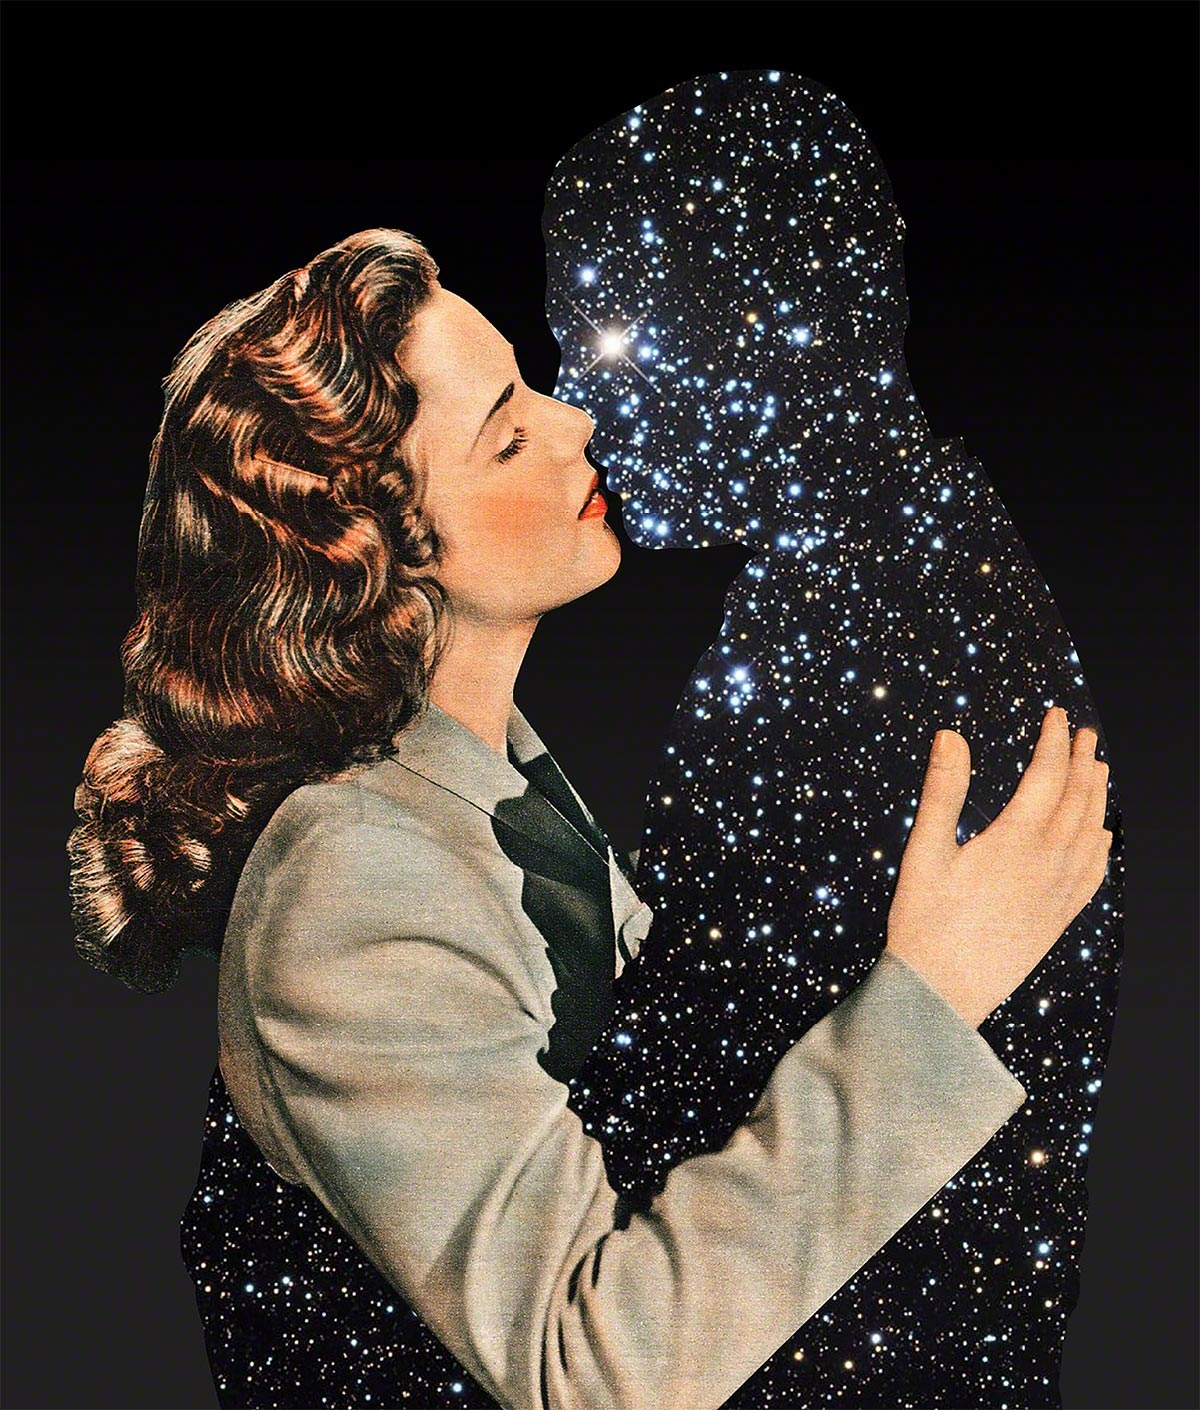 JOE WEBB, Antares and Love XI, 2015